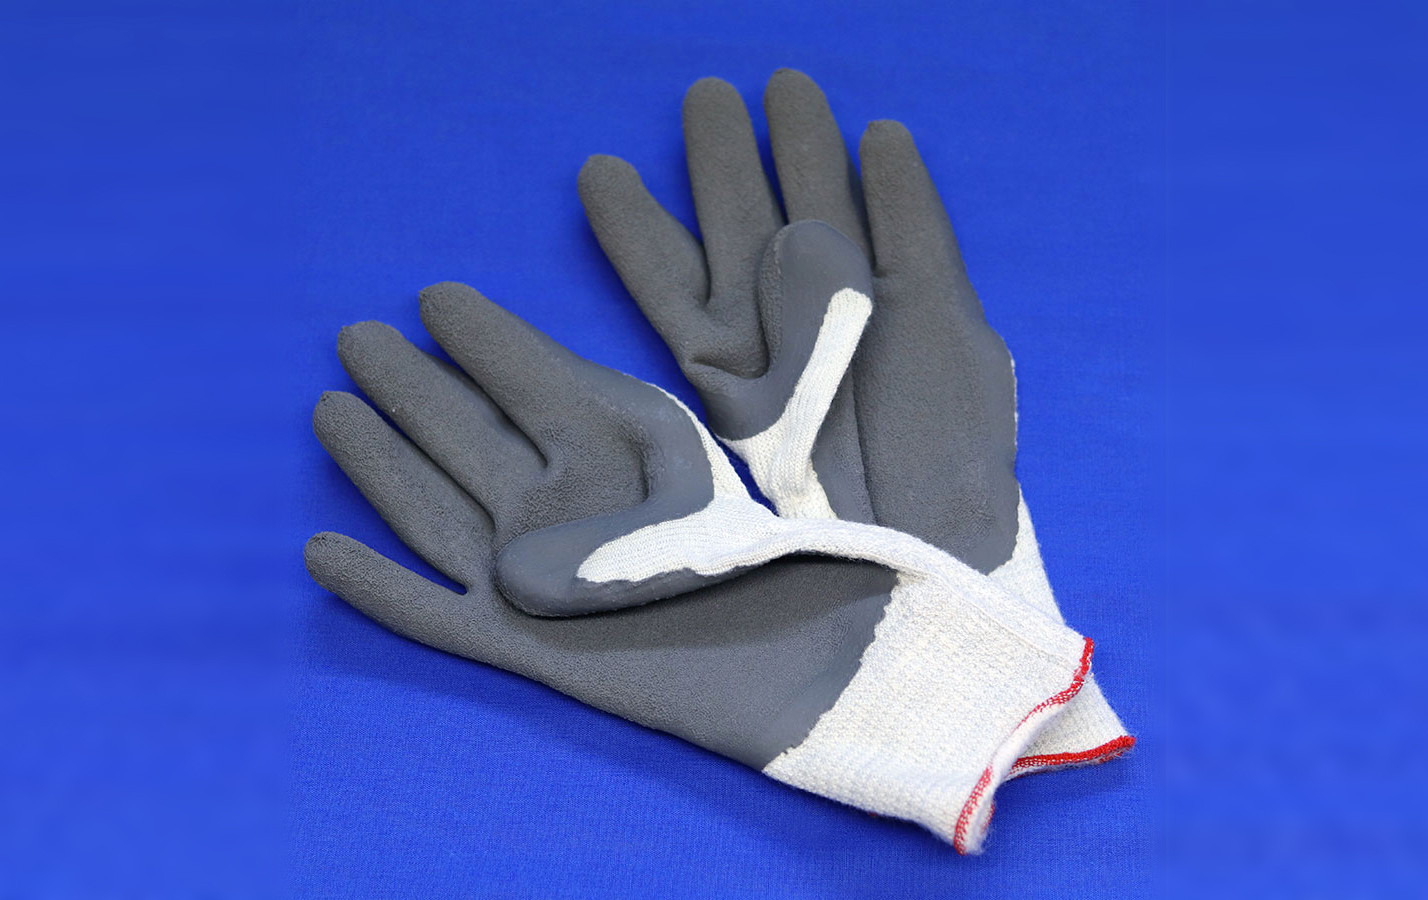 Insulated gloves for handling dry ice